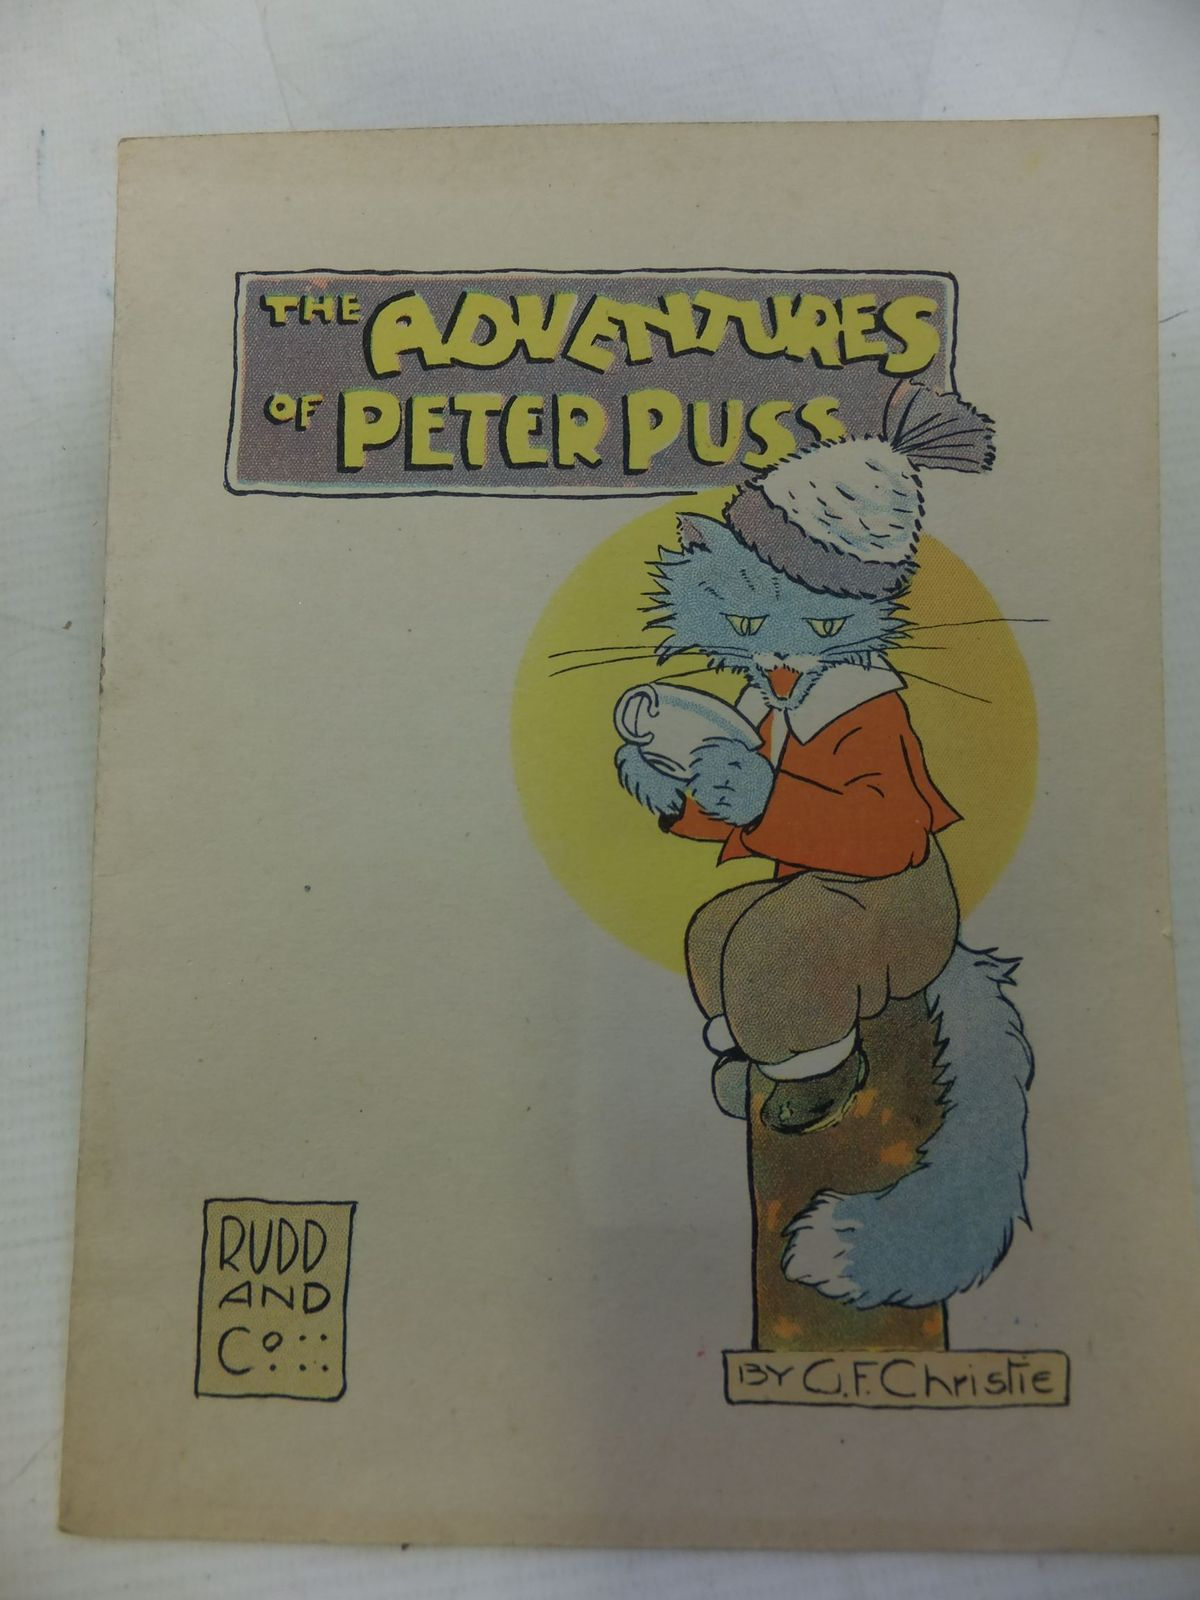 Photo of THE ADVENTURES OF PETER PUSS written by Christie, G.F. illustrated by Christie, G.F. published by Rudd & Co. (STOCK CODE: 2114317)  for sale by Stella & Rose's Books